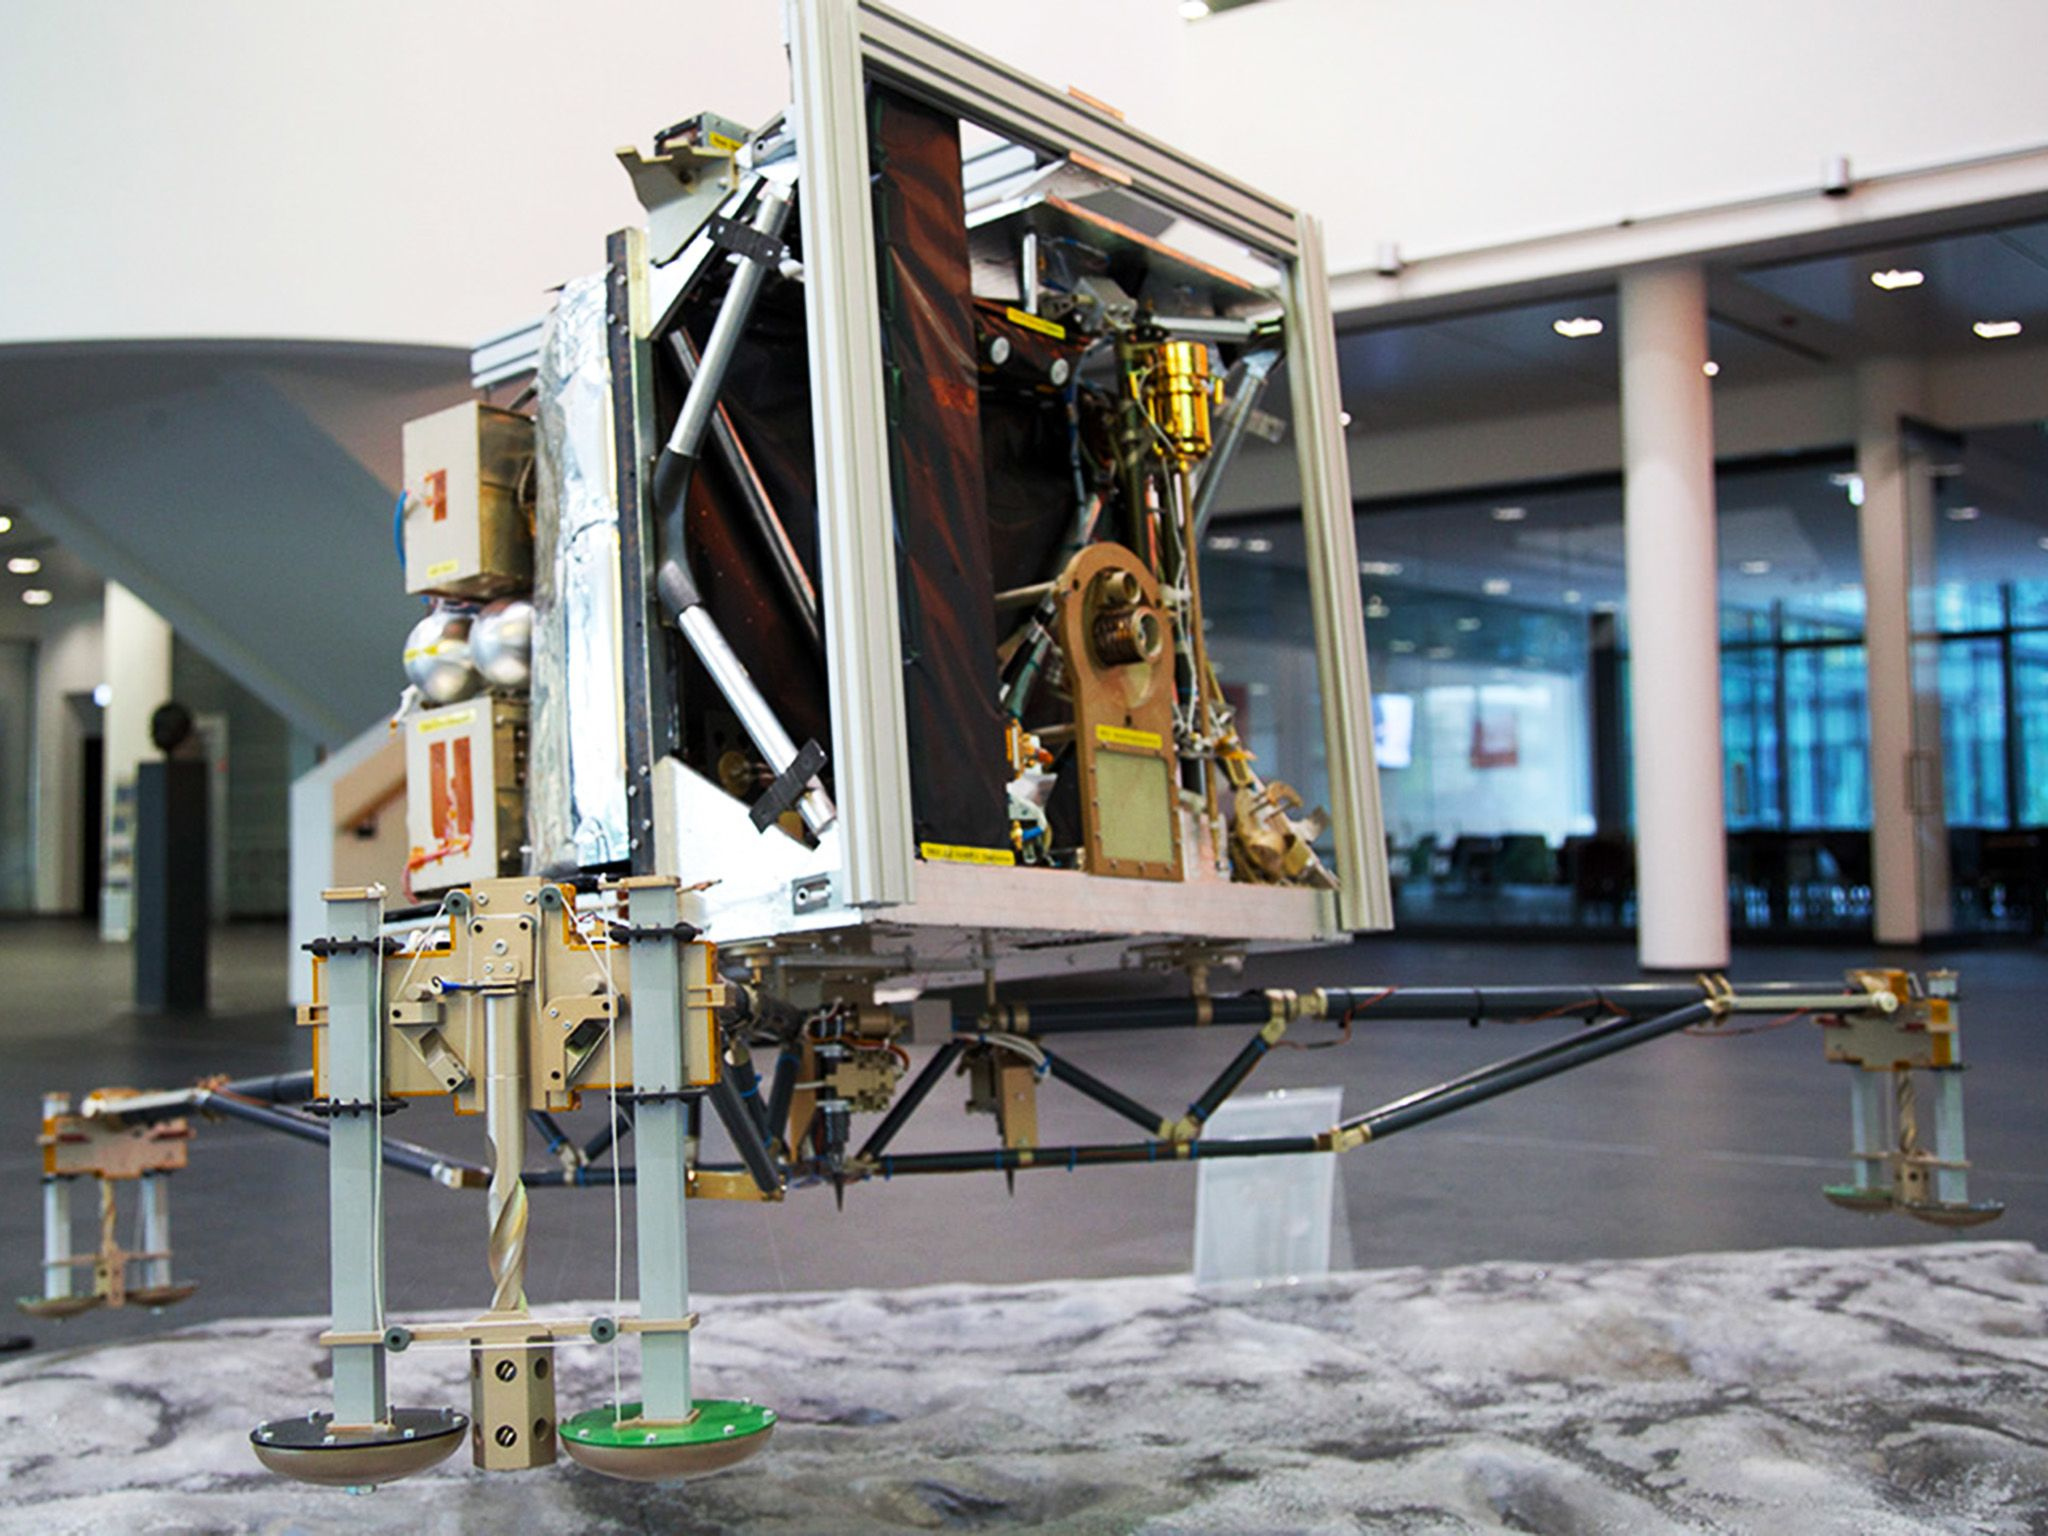 Max Planck Institute of Solar System Research, Gottingen, Germany: Philae Replica - Max Planck... [Photo of the day - 十一月 2014]